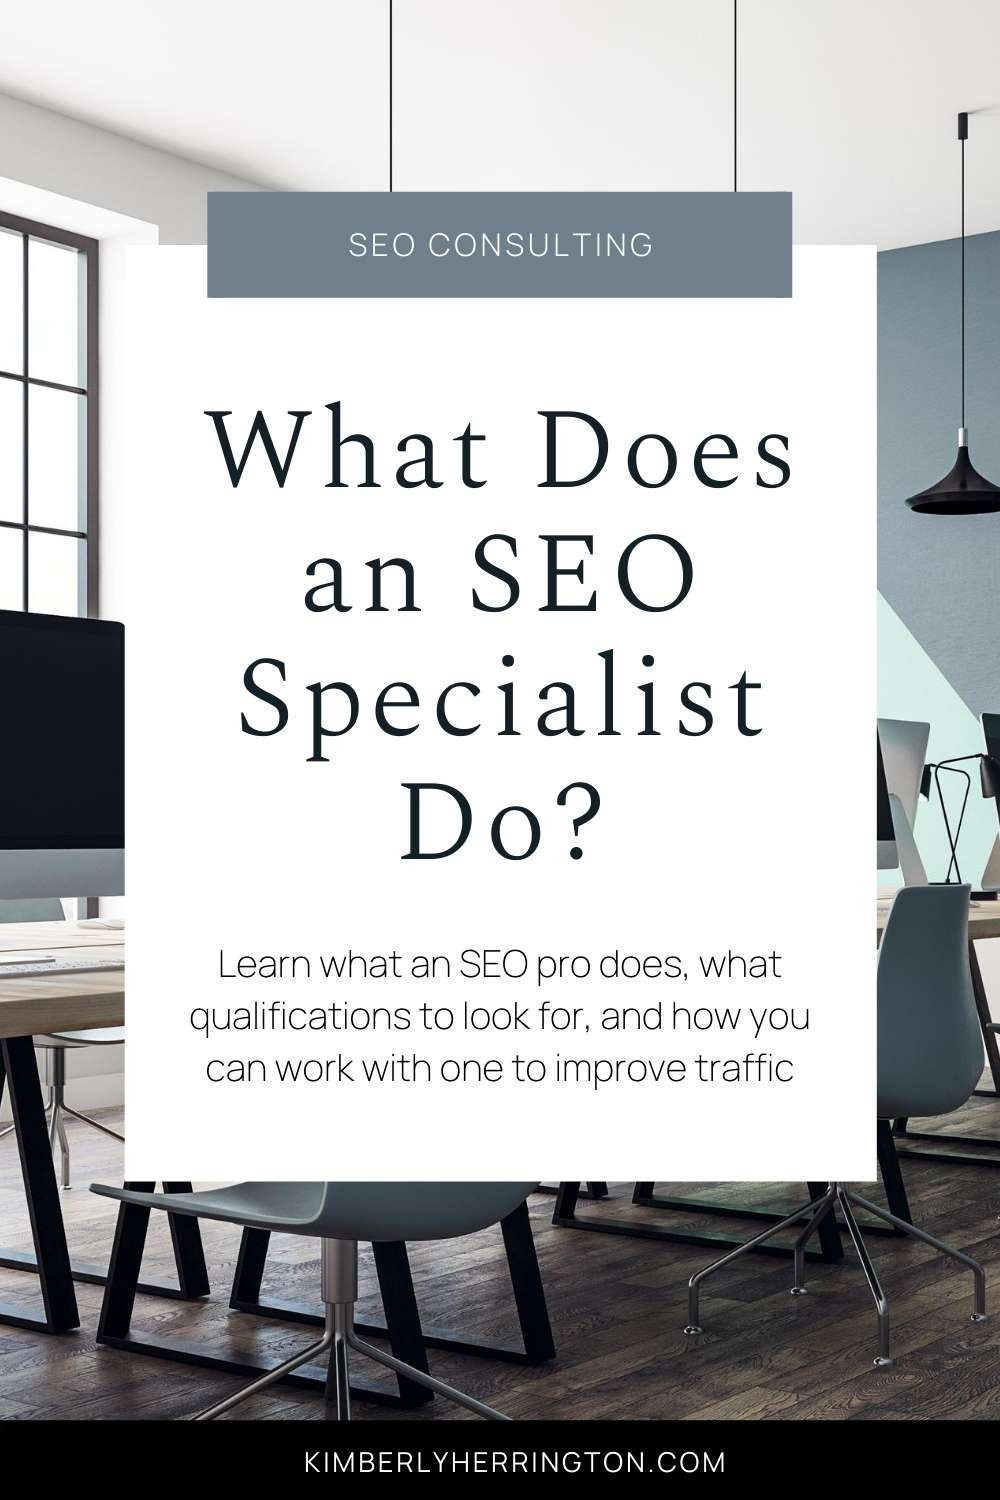 What Is an SEO Specialist & What Do They Do?